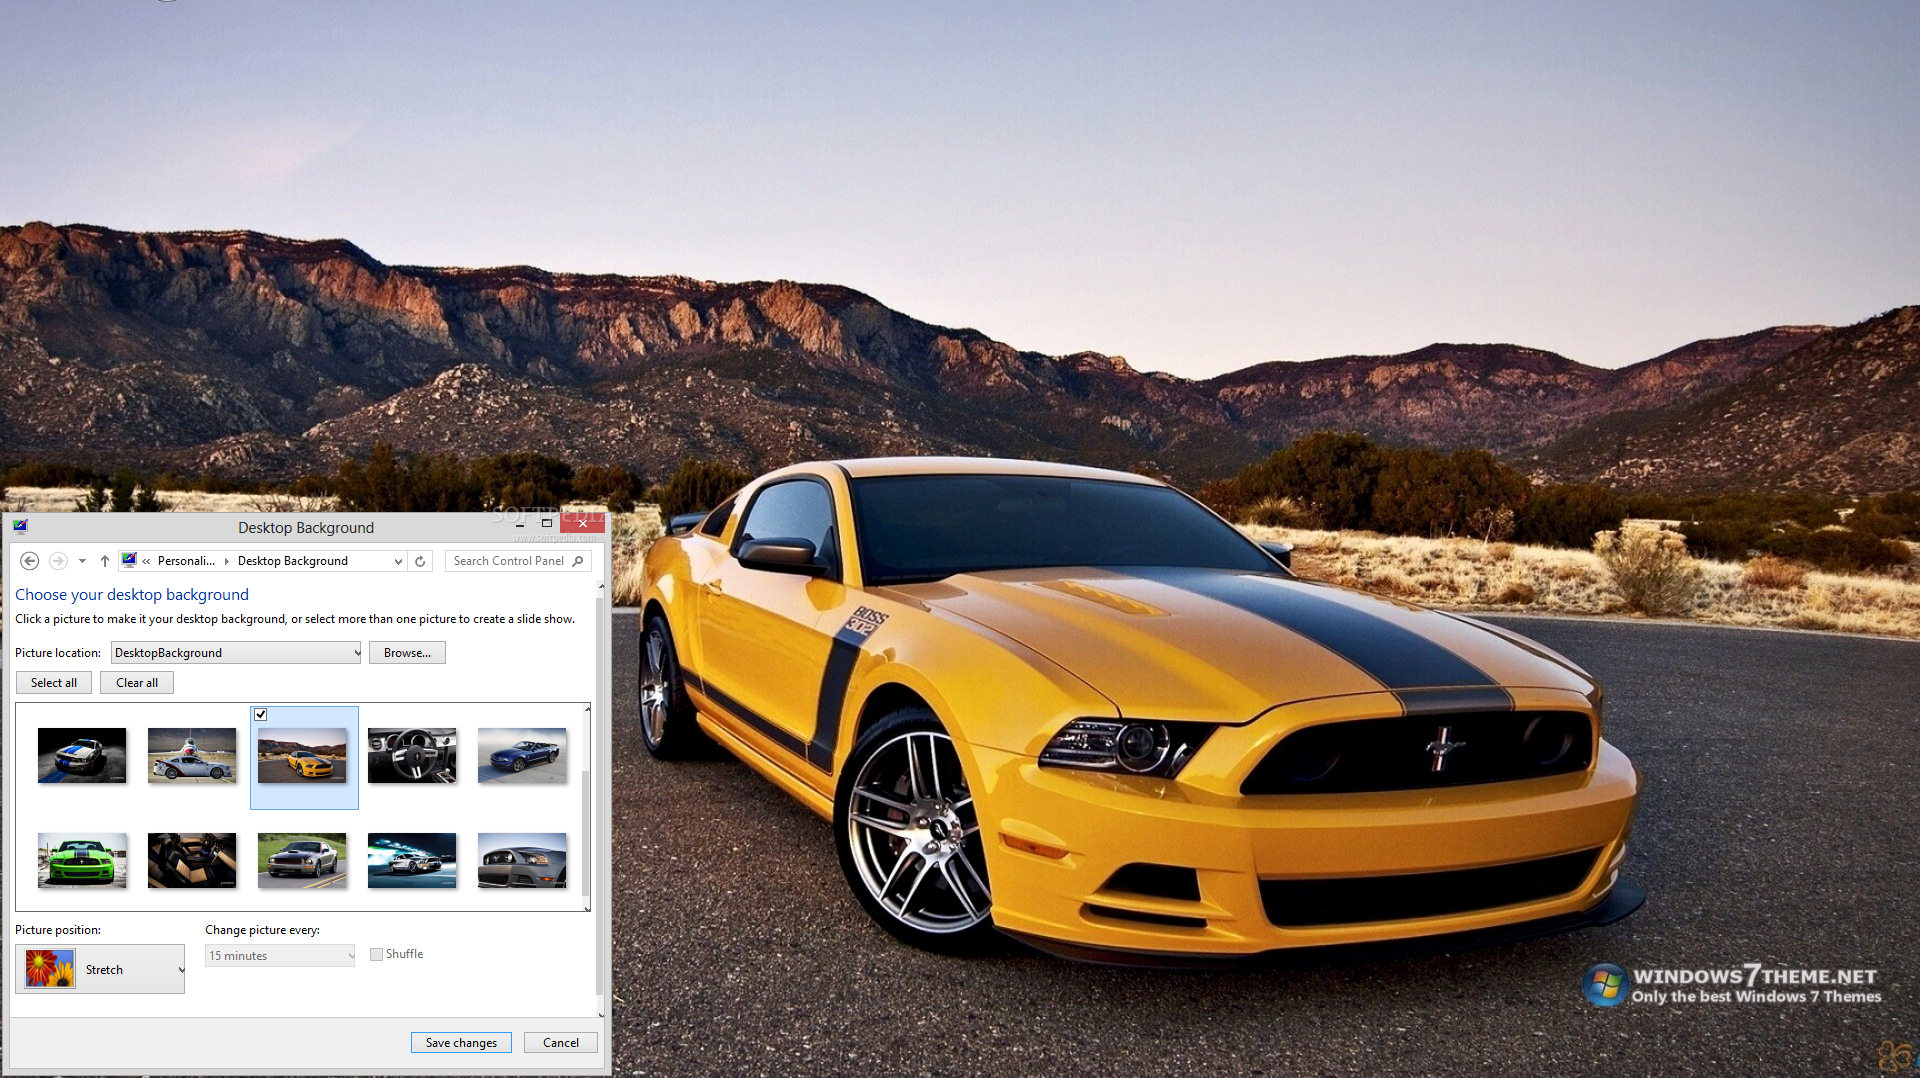 Windows 7 Ford Mustang Theme